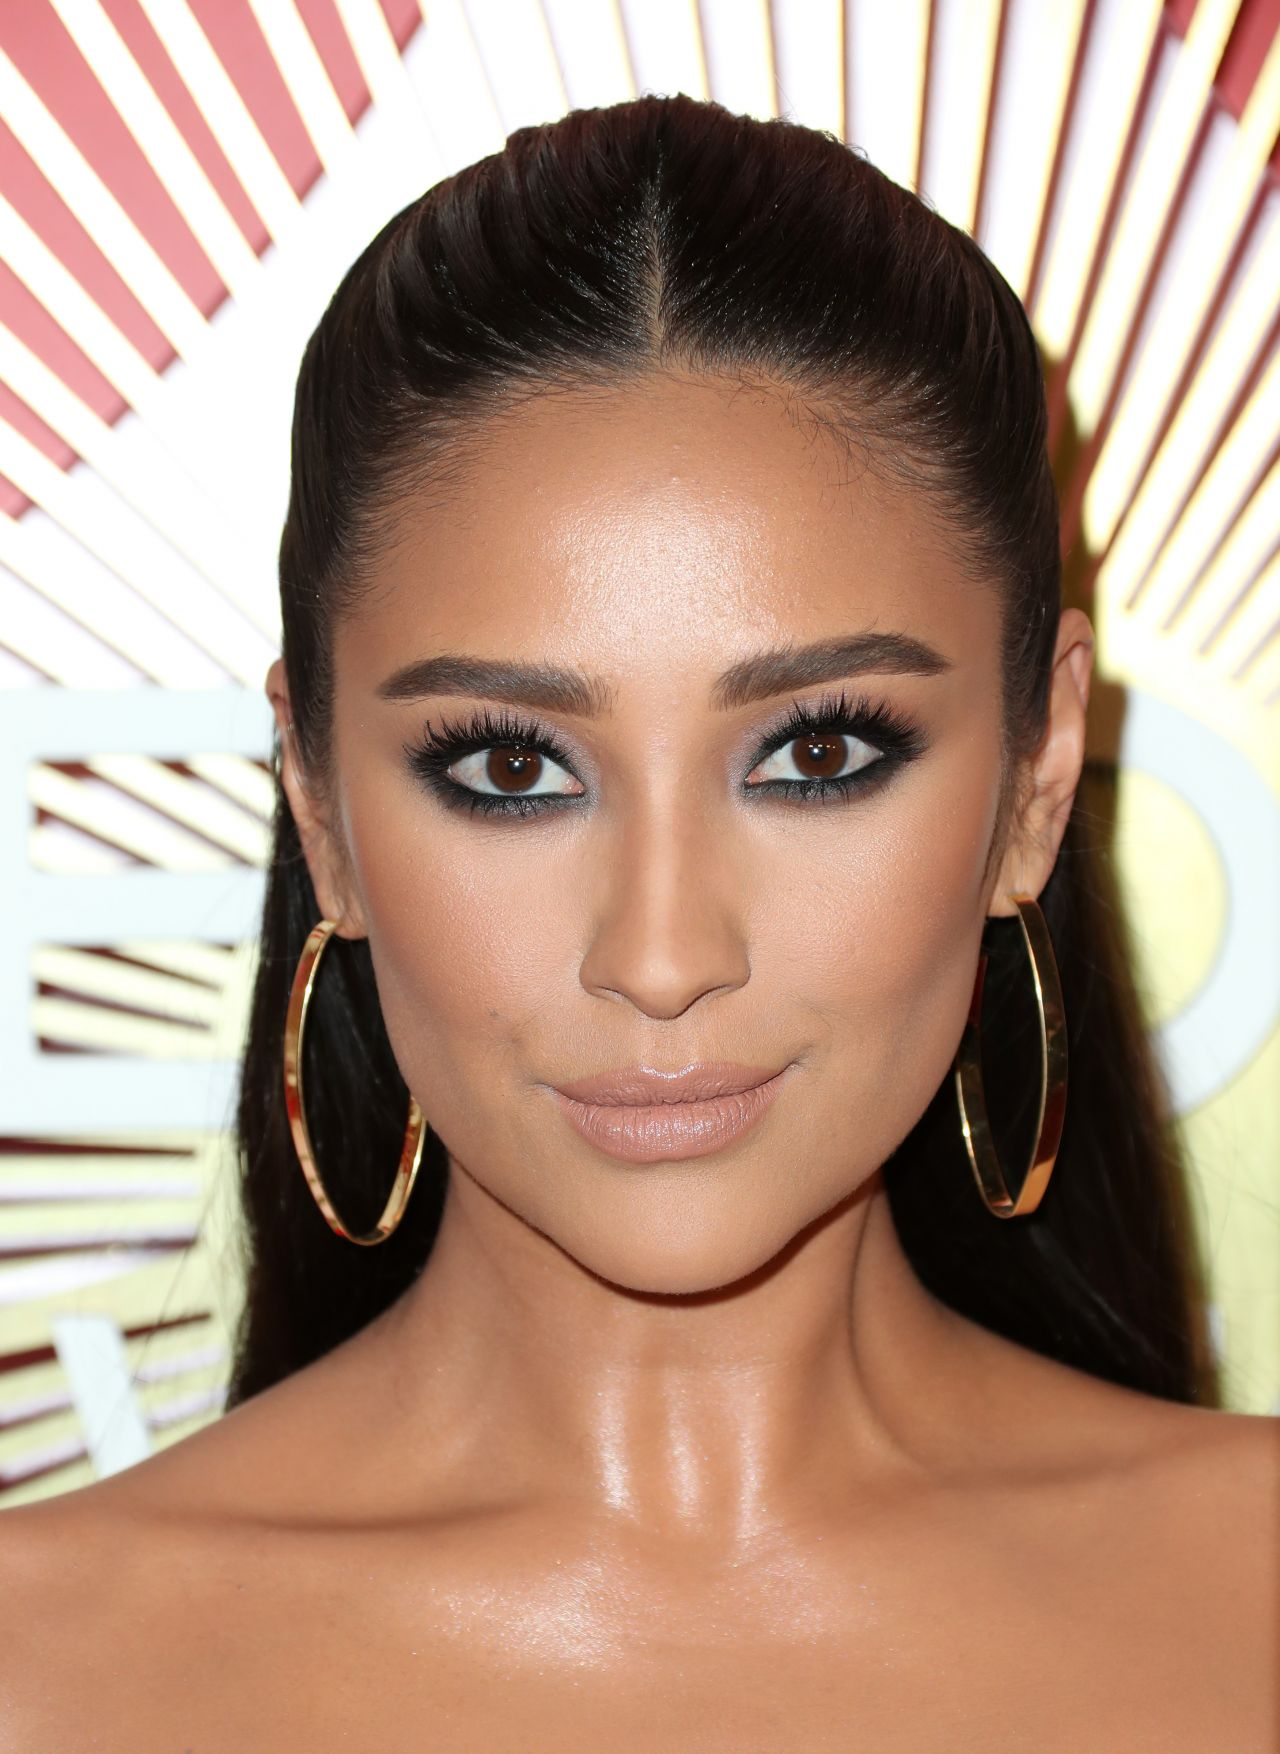 shay-mitchell-2018-revolveawards-in-las-vegas-1.jpg